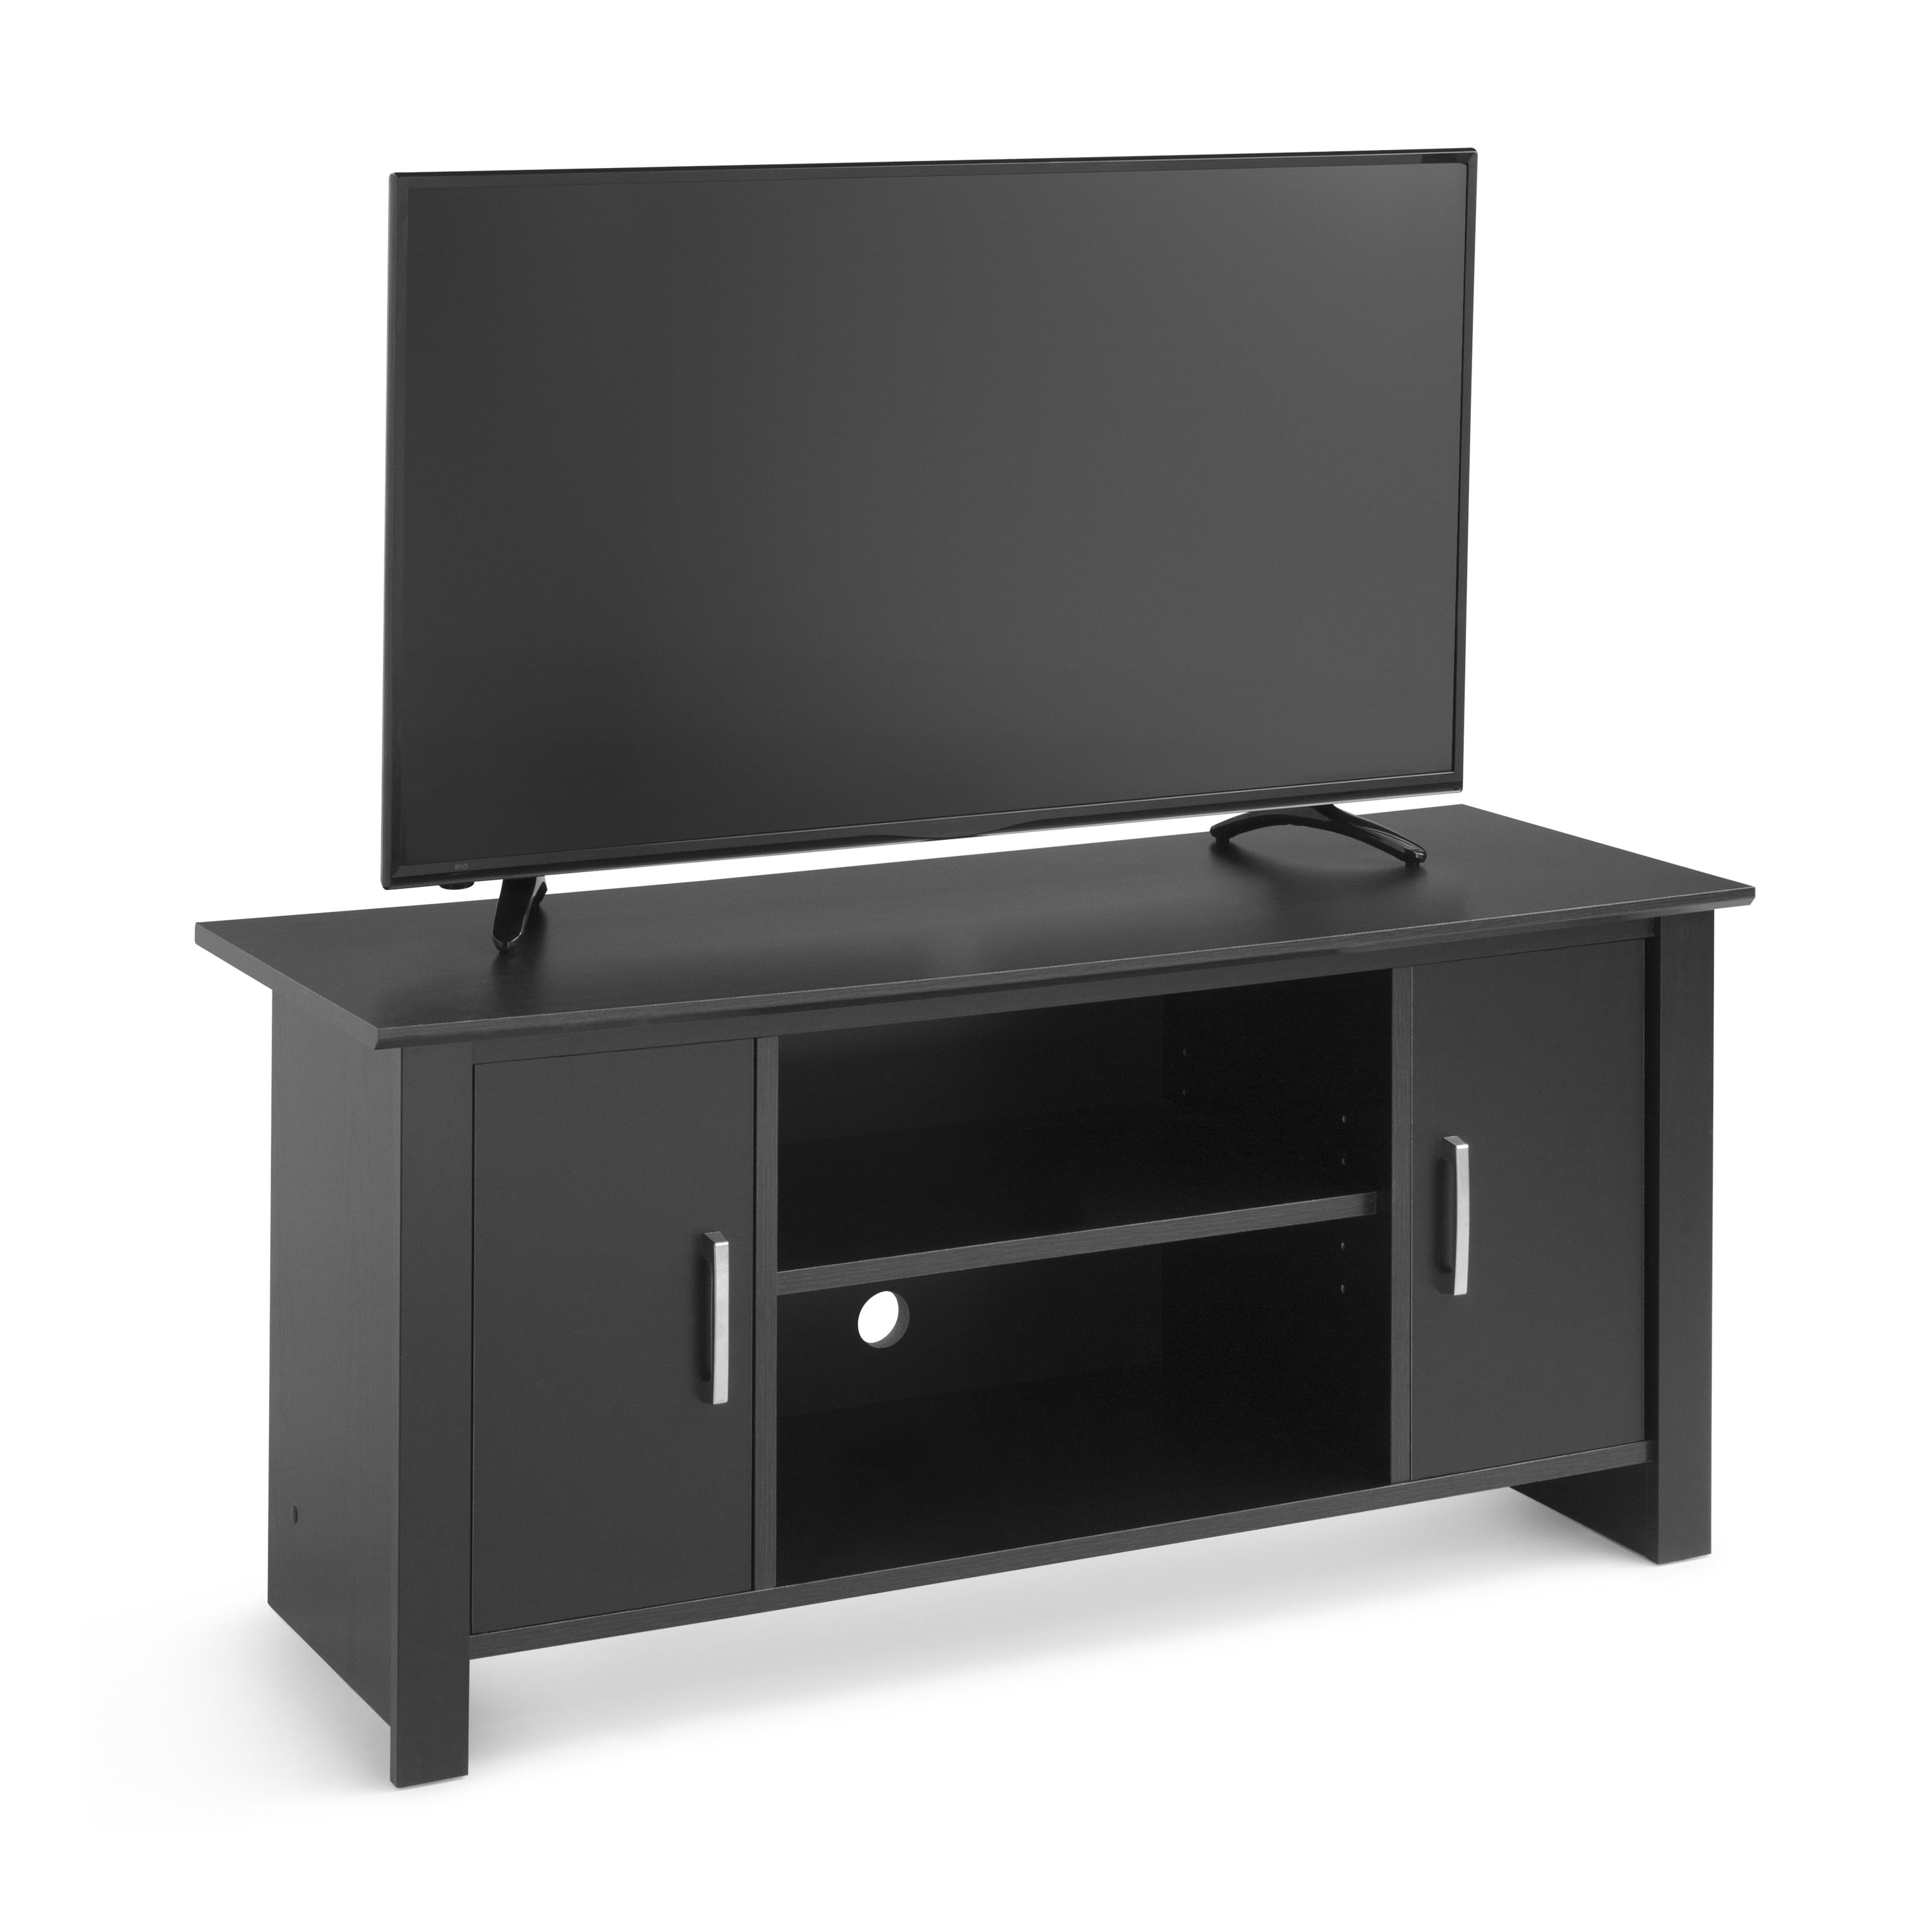 "Most Recently Released Mainstays Tv Stand For Flat Screen Tvs Up To 47"", True Black Oak With Canyon 64 Inch Tv Stands (View 10 of 20)"